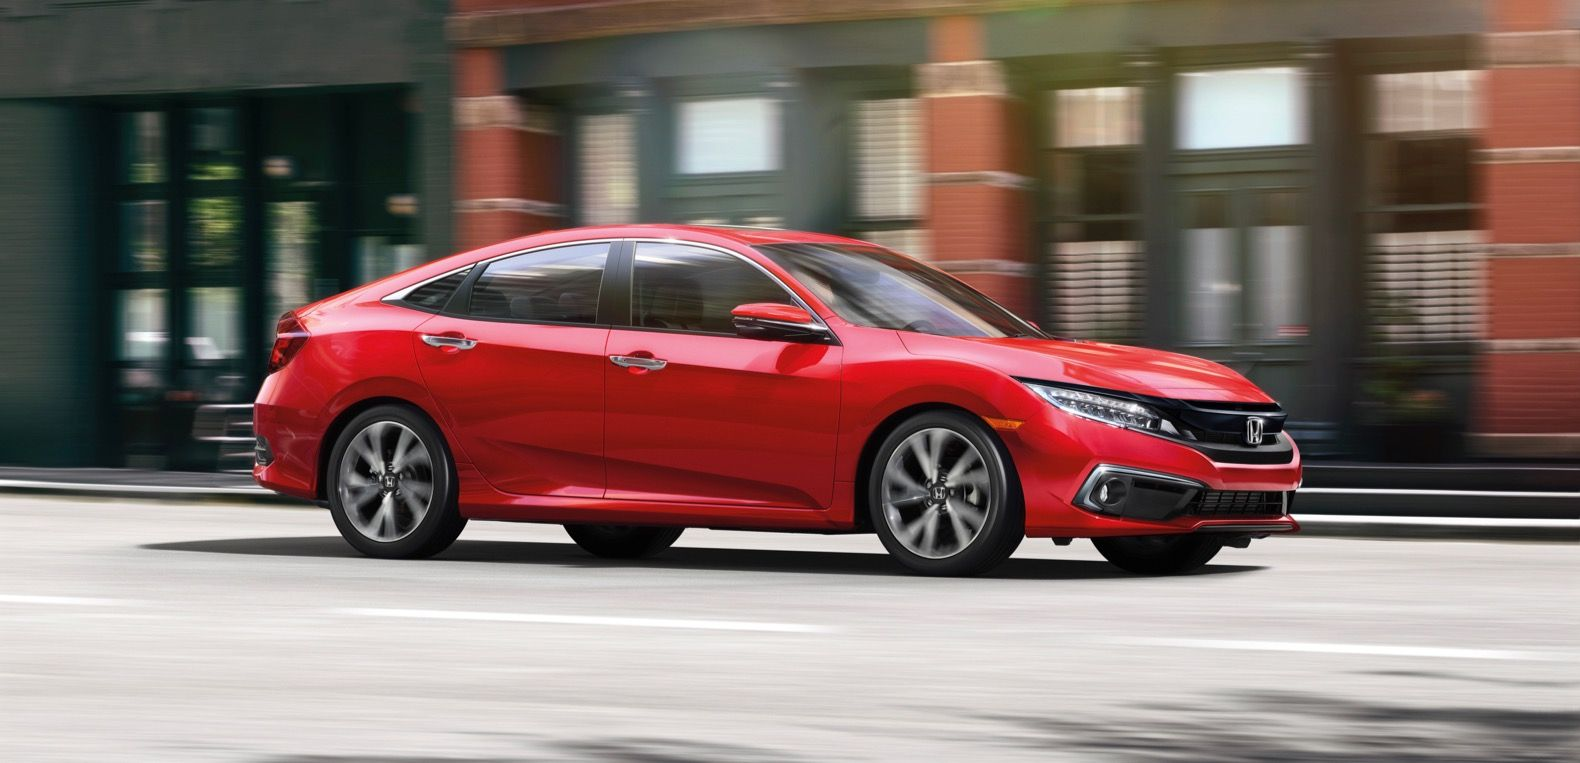 Honda Has Announced The Pricing For The Updated 2019 Honda Civic Sedan And Coupe The Cheapest Model Is The 2019 Civi Honda Civic Honda Civic Sedan Civic Sedan